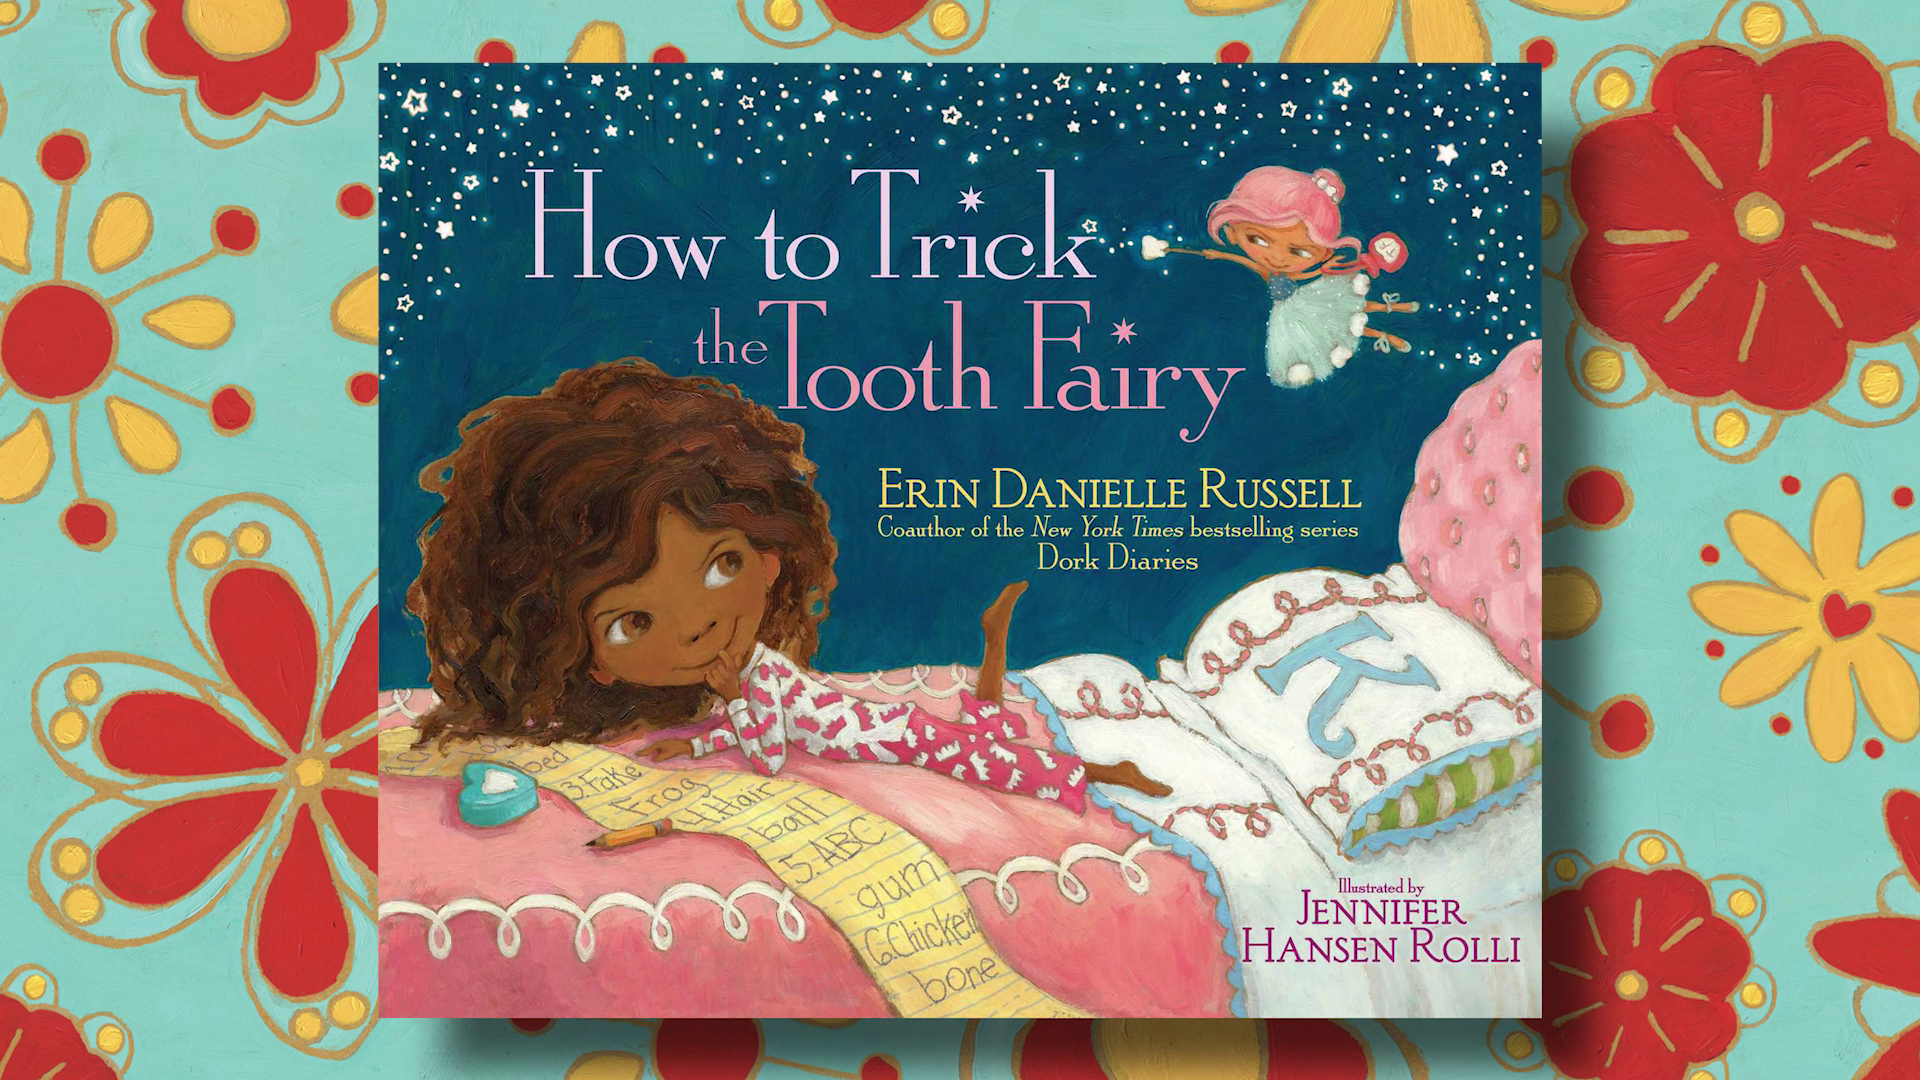 Erin Danielle Russell Discusses Her Picture Book HOW TO TRICK THE TOOTH FAIRY